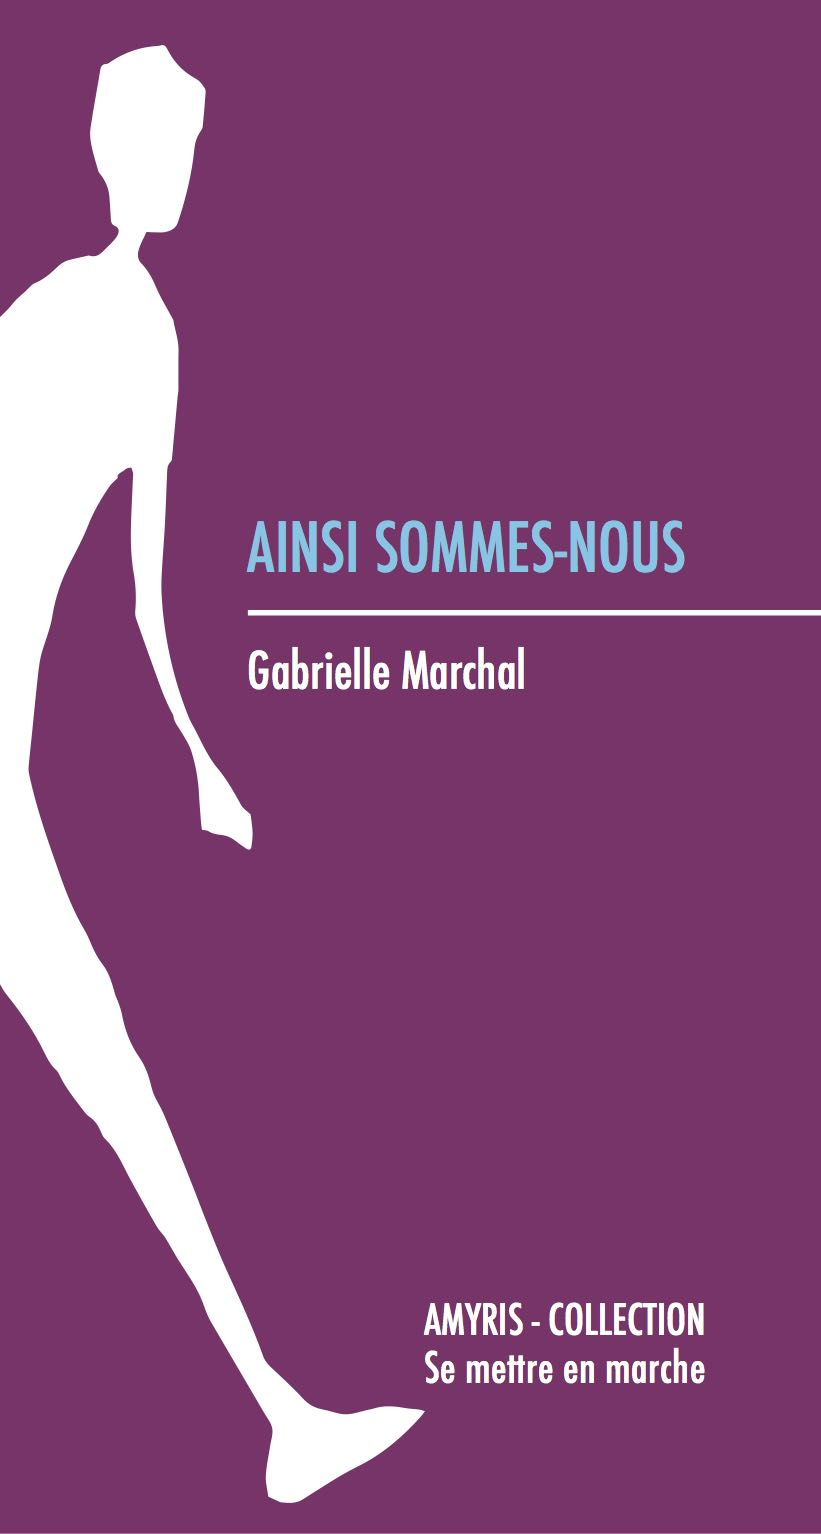 Ainsi sommes-nous